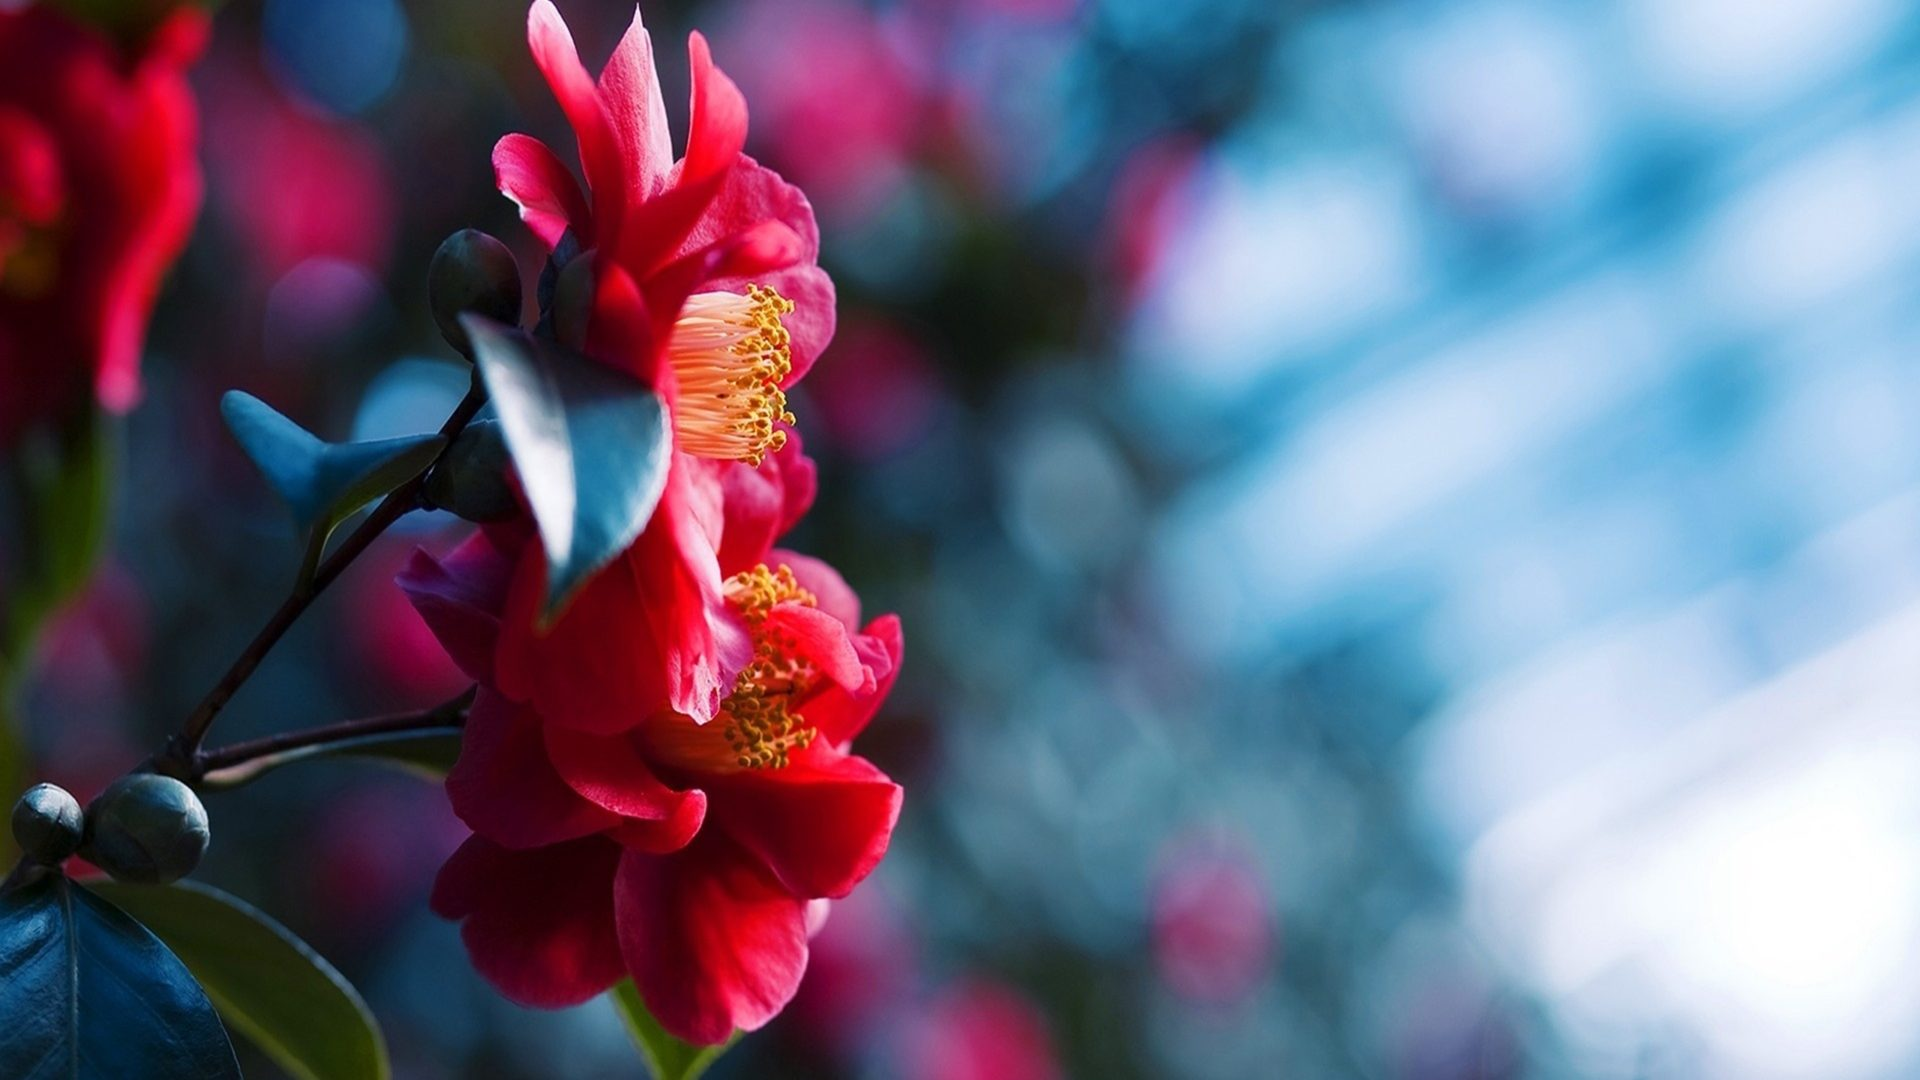 Red Flowers Blossom Blue Blurred Background 2560x1600